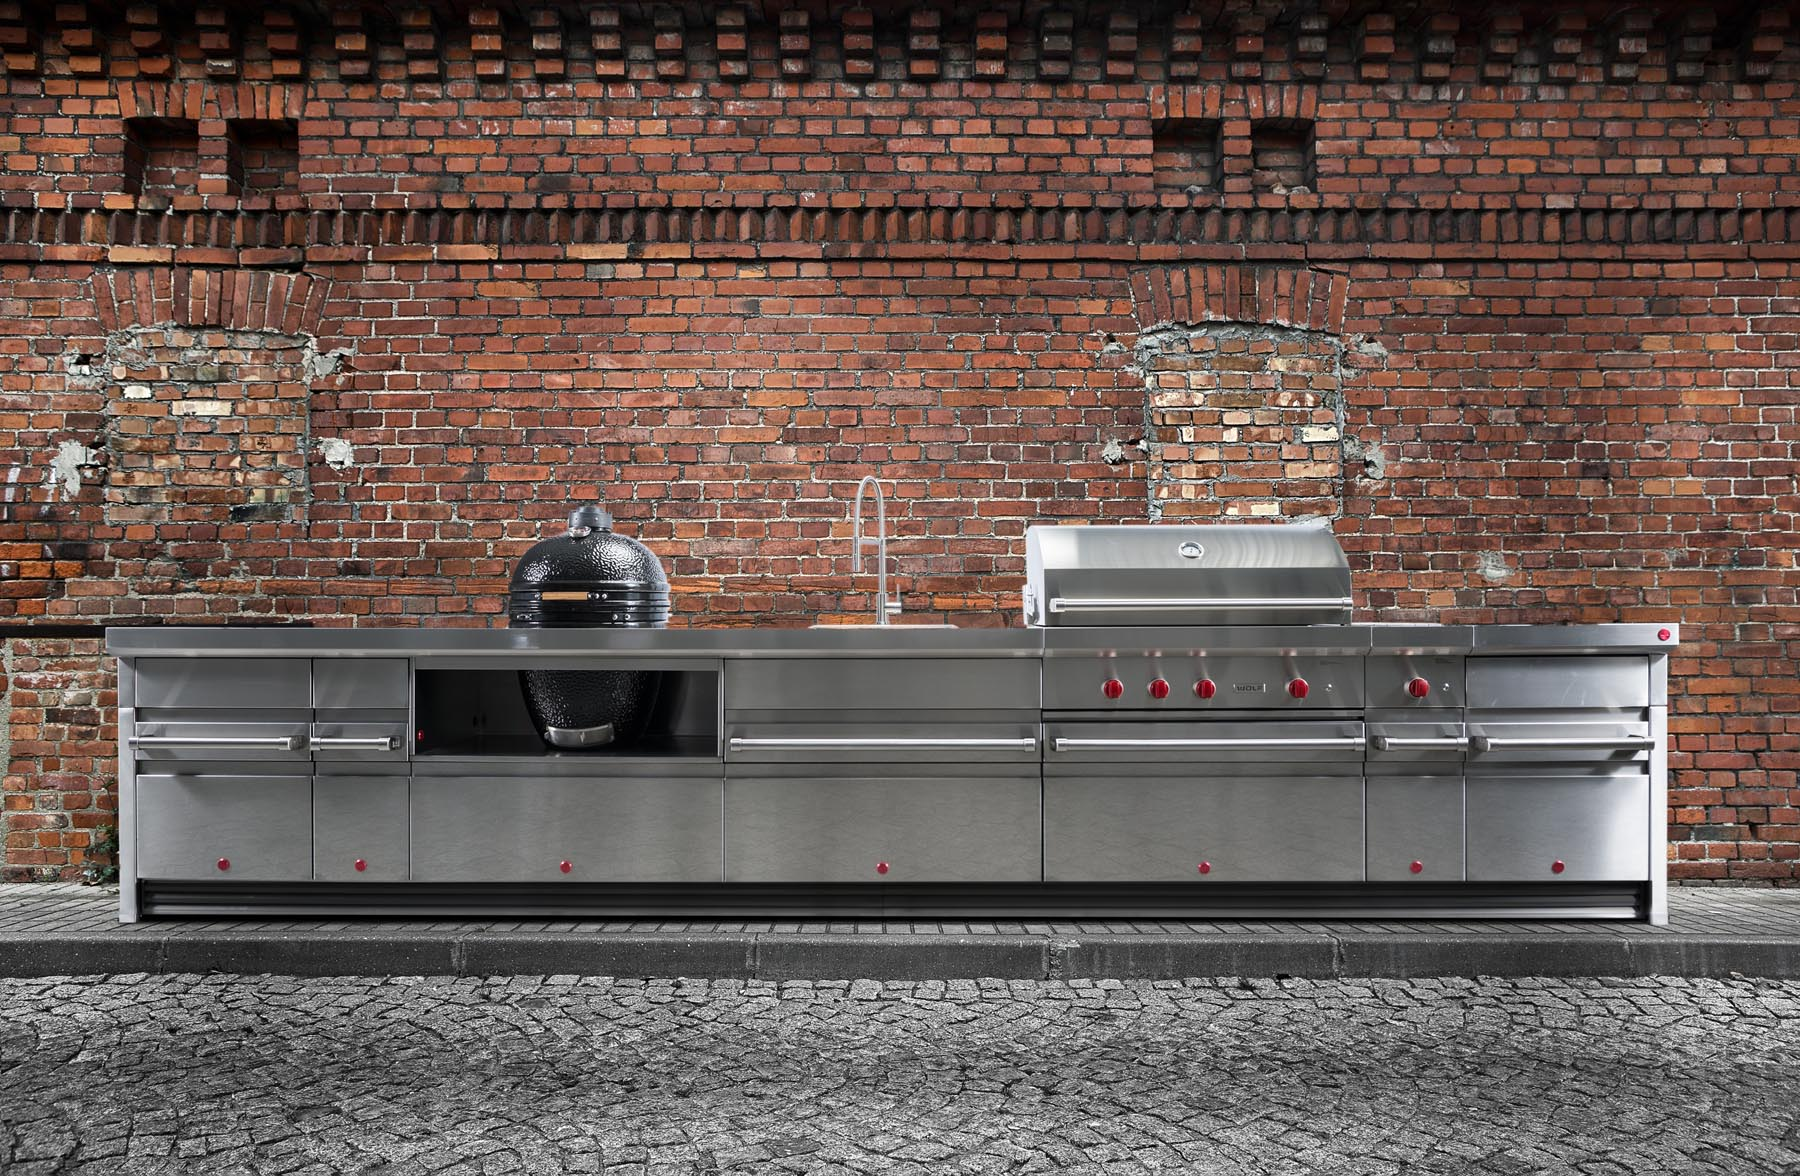 Wolf-outdoor-kitchen-redstone-wall-BBQ-Closed